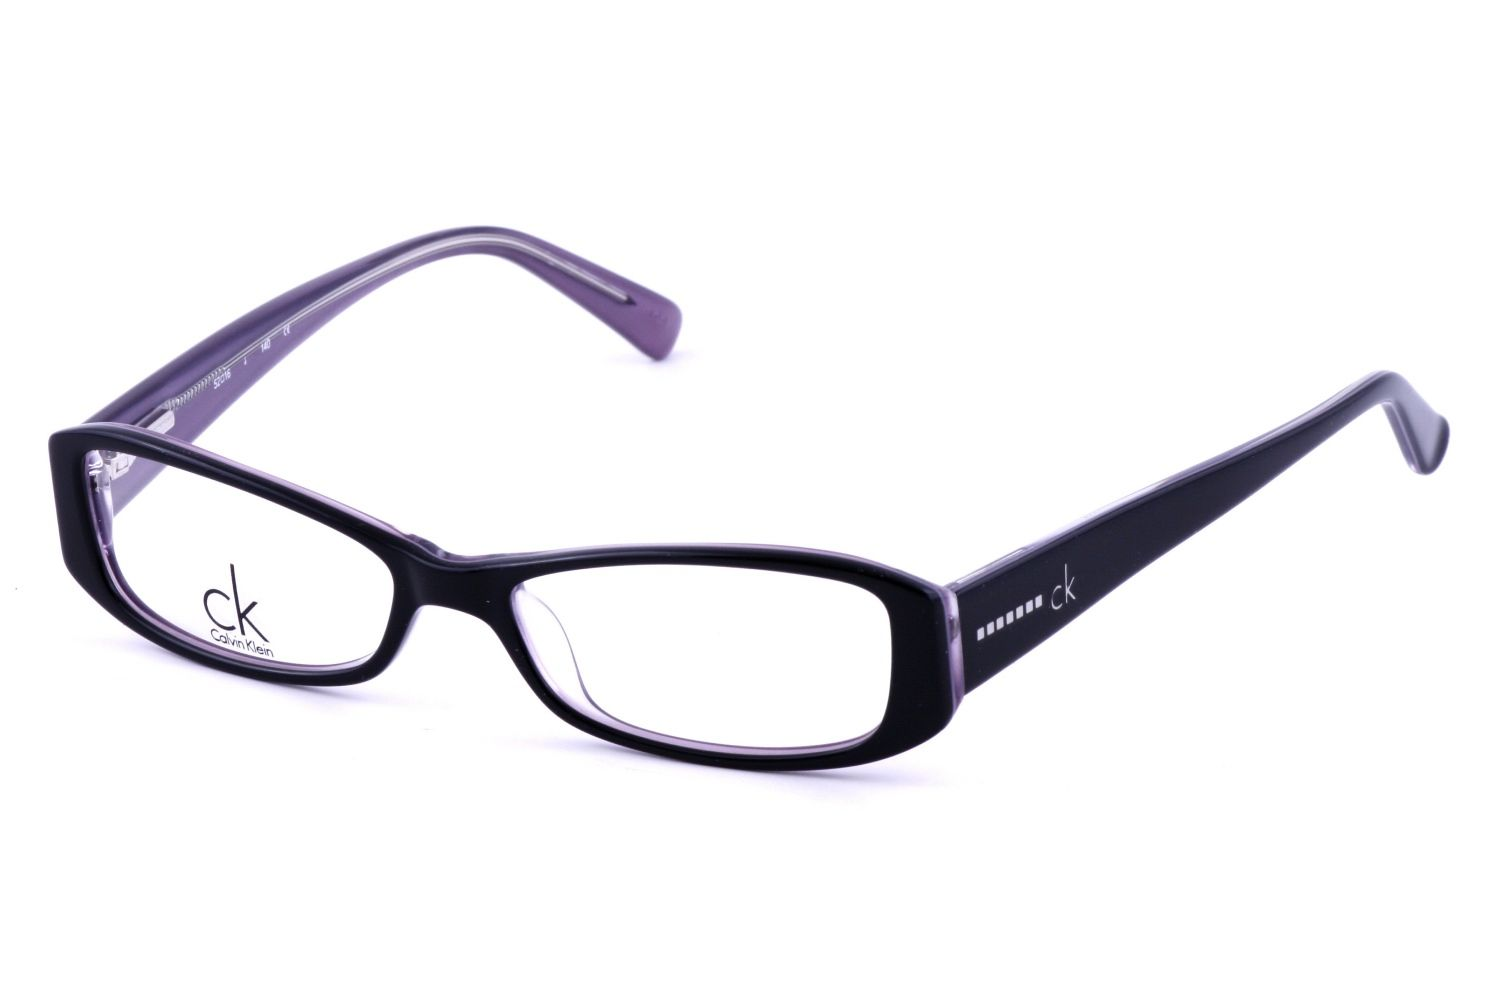 Funky prescription Eyeglass Frames for women | Klein 5637 eyeglasses ...